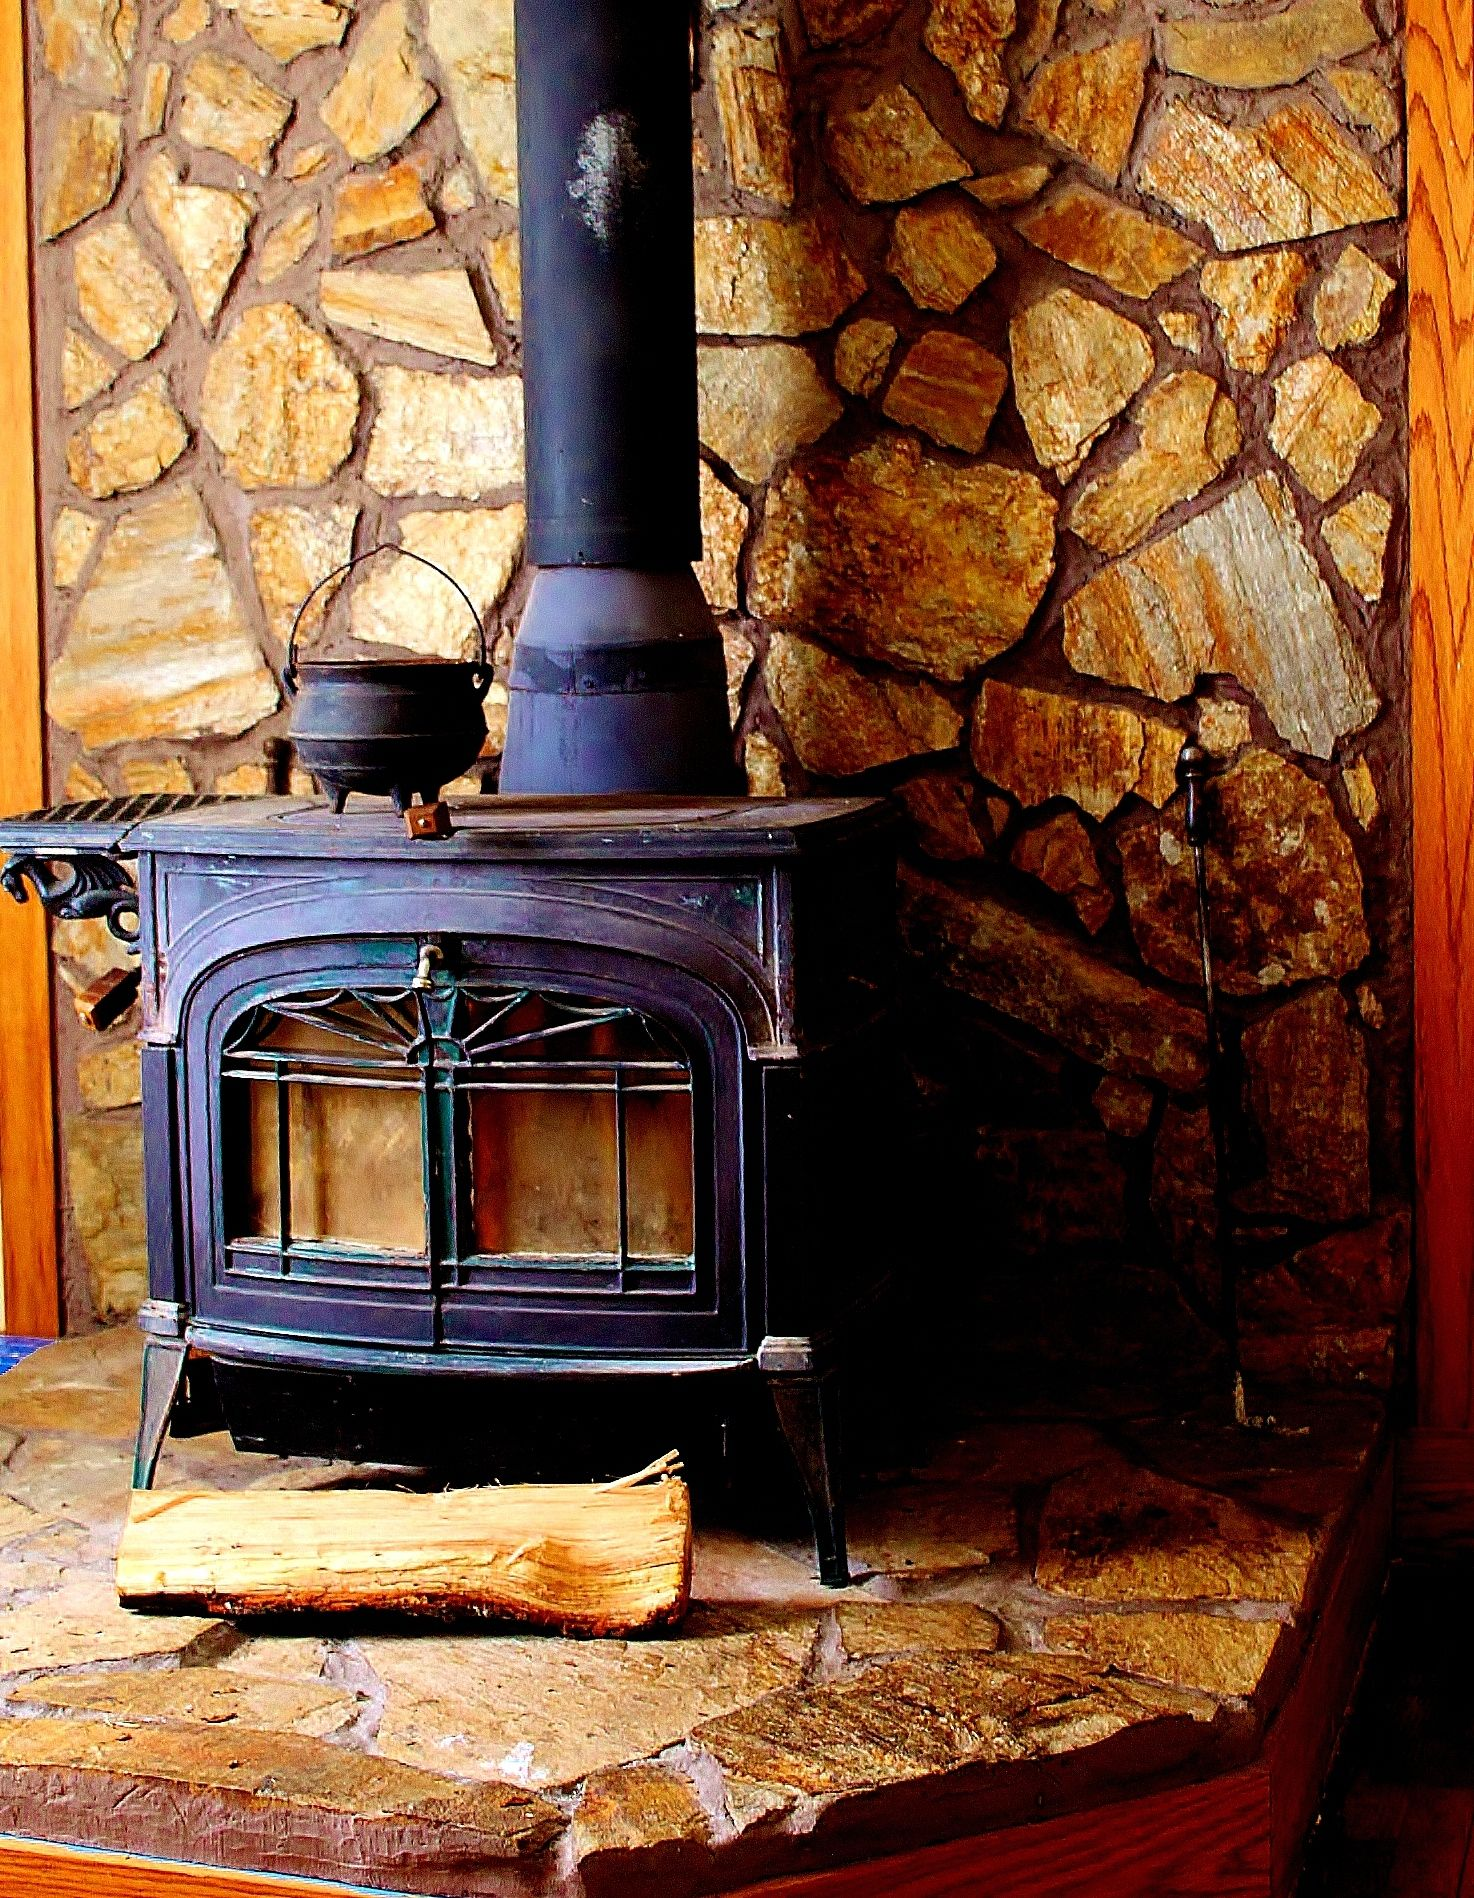 I Grew Up With A Woodstove On A Stone Hearth Curled Up